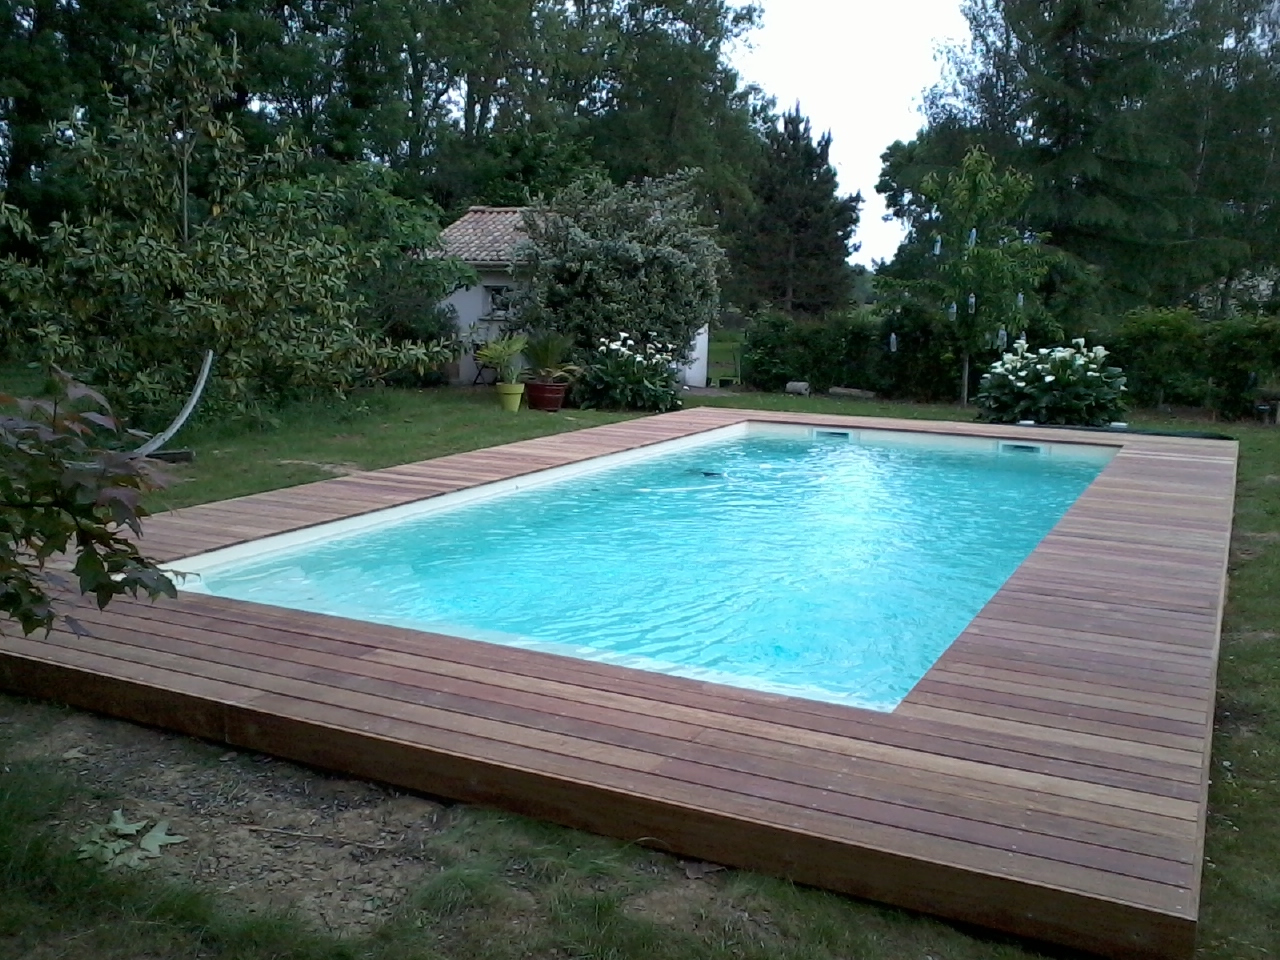 Nos terrasses bois sanitoit for Piscine bois solde